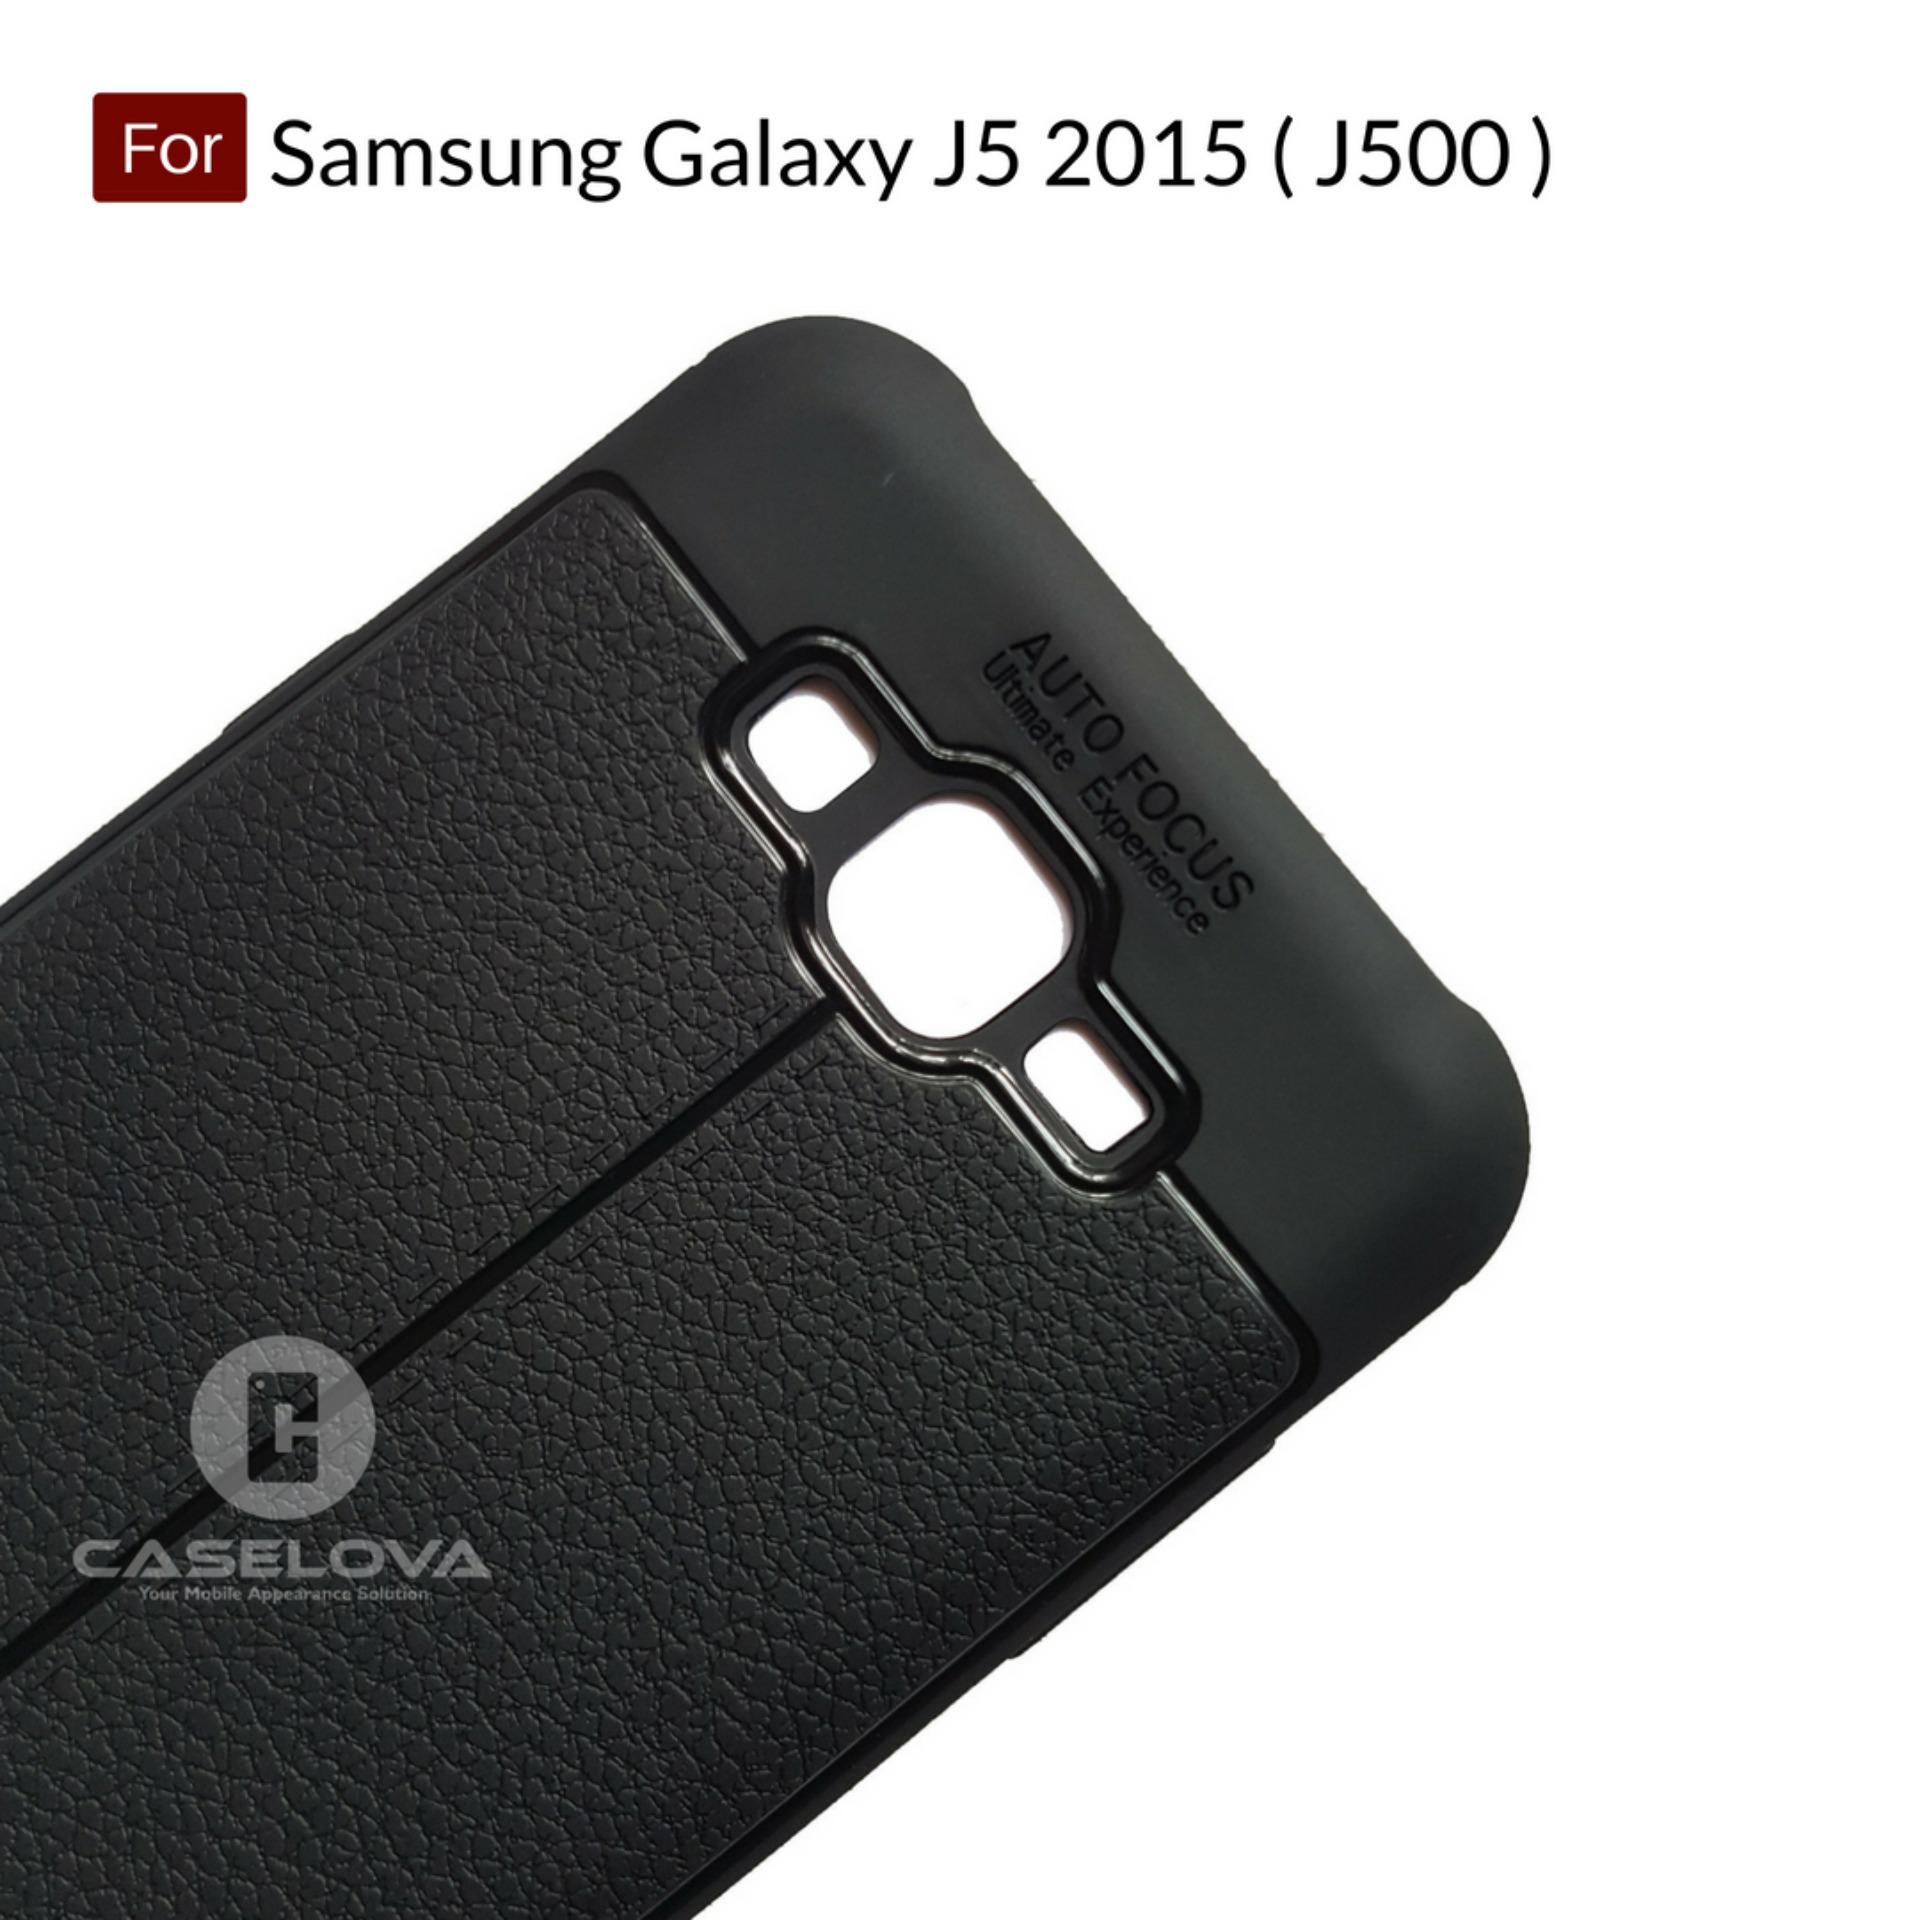 Caselova Ultimate Experience Shockproof Premium Quality Hybrid Case For Samsung Galaxy J5 2015 .